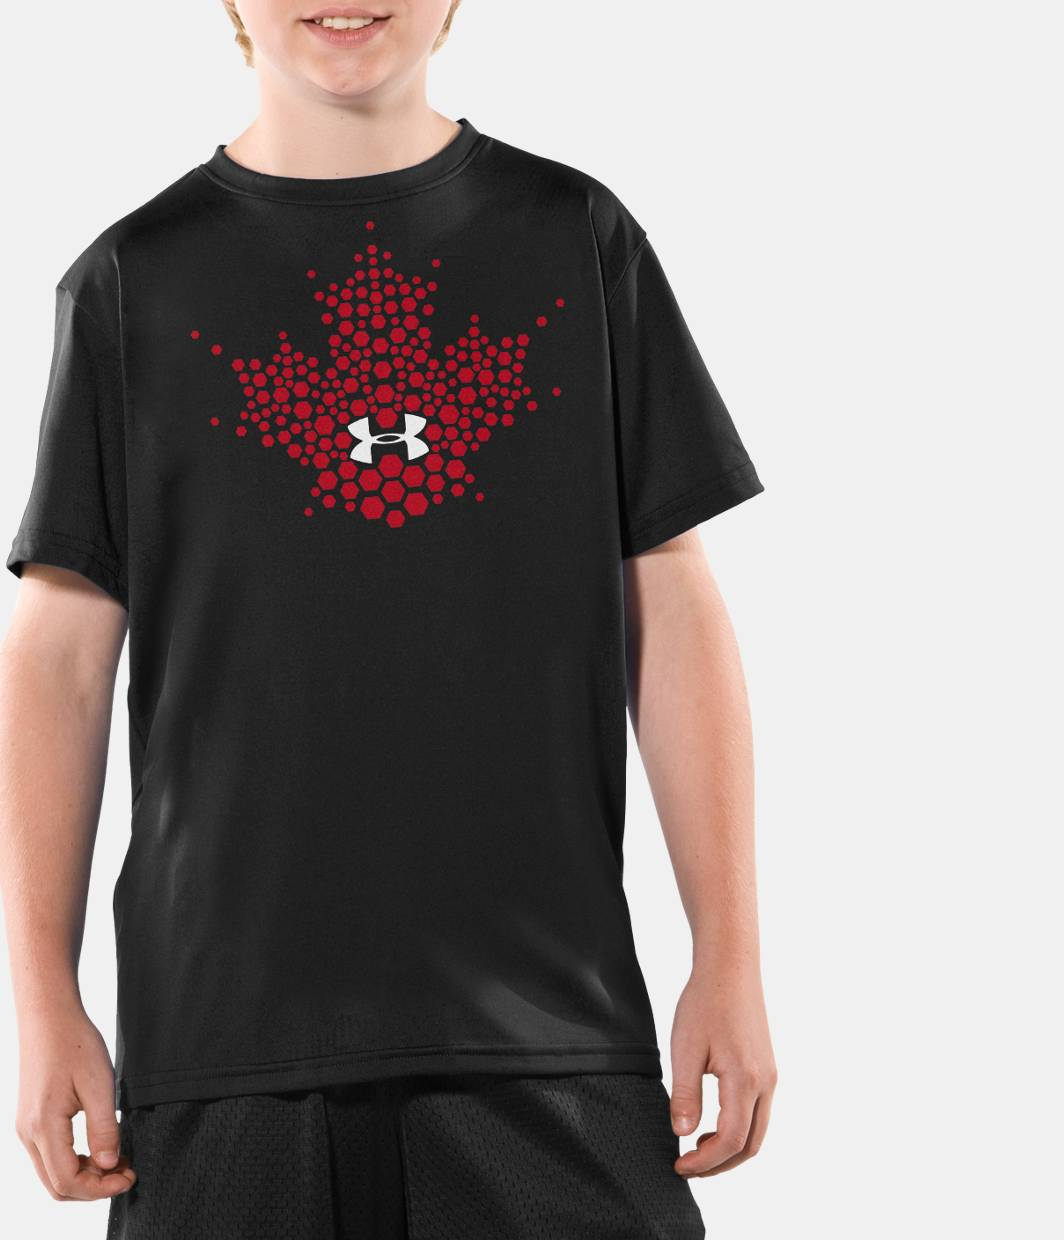 Boys hockey canada graphic t shirt under armour ca for Under armor hockey shirt